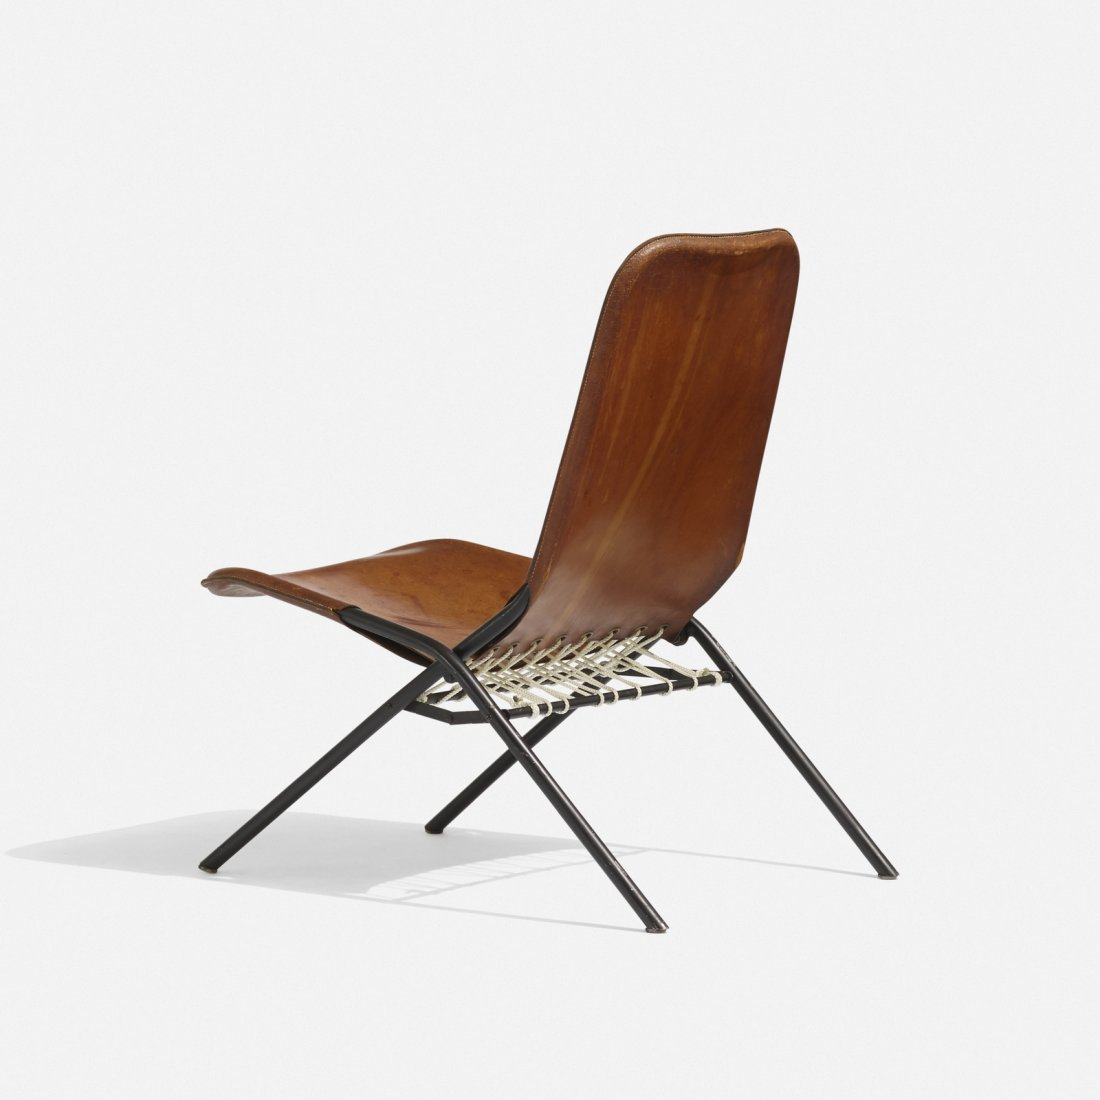 Olle Pira, folding chair